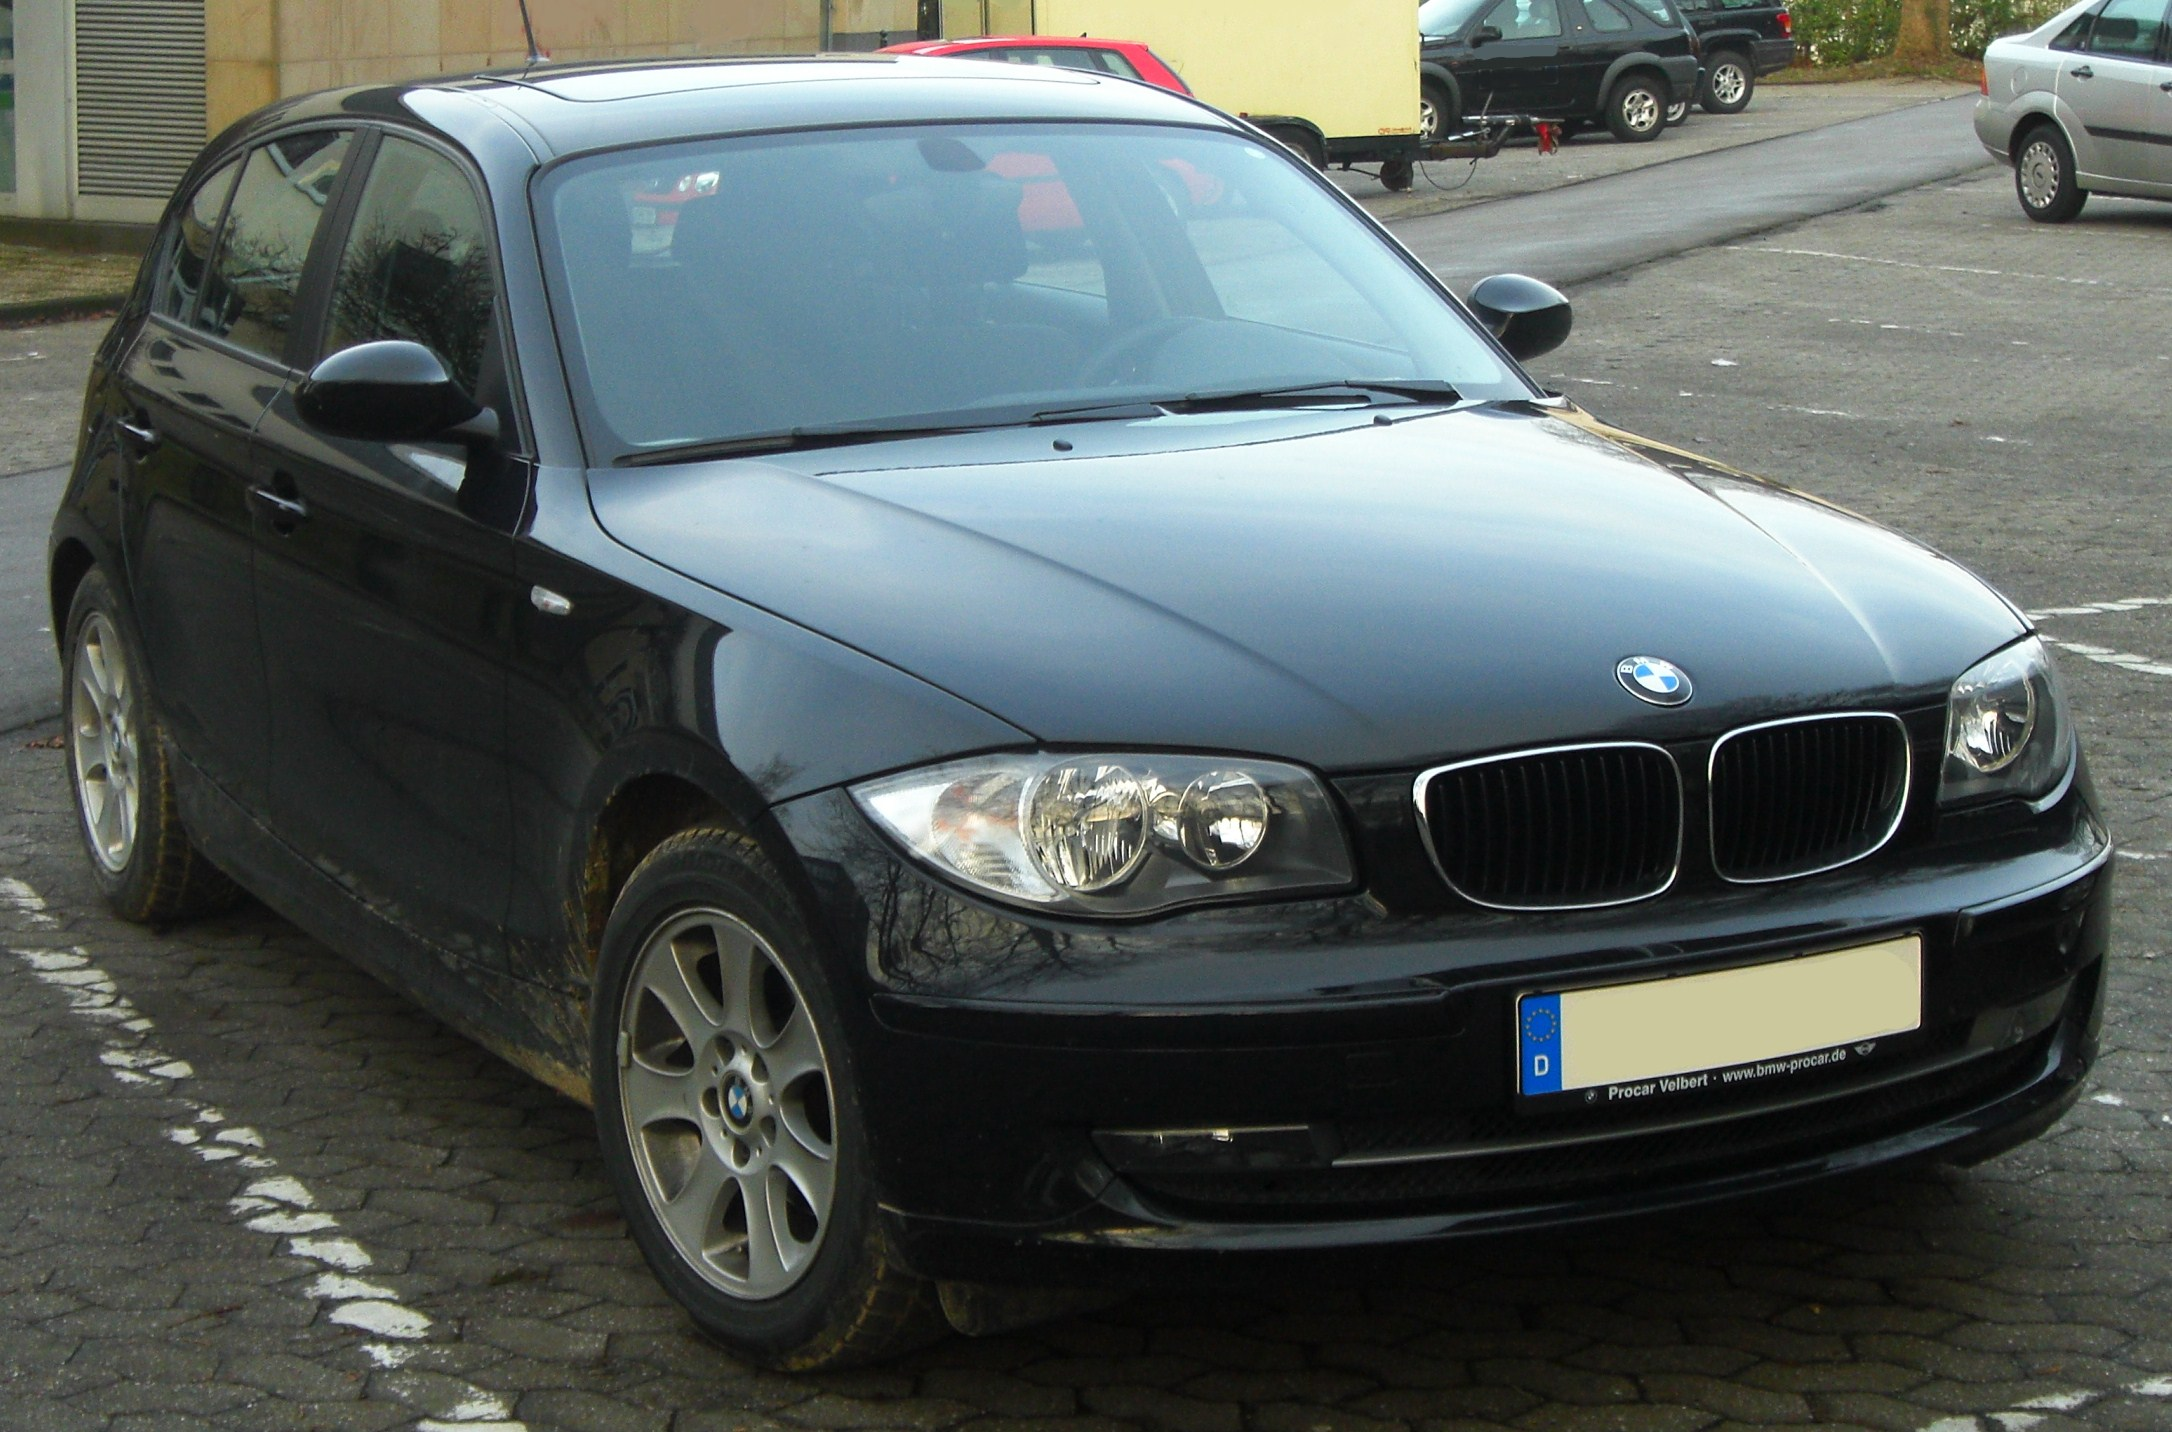 file bmw 1er e87 facelift seit 2007 front mj jpg wikimedia commons. Black Bedroom Furniture Sets. Home Design Ideas